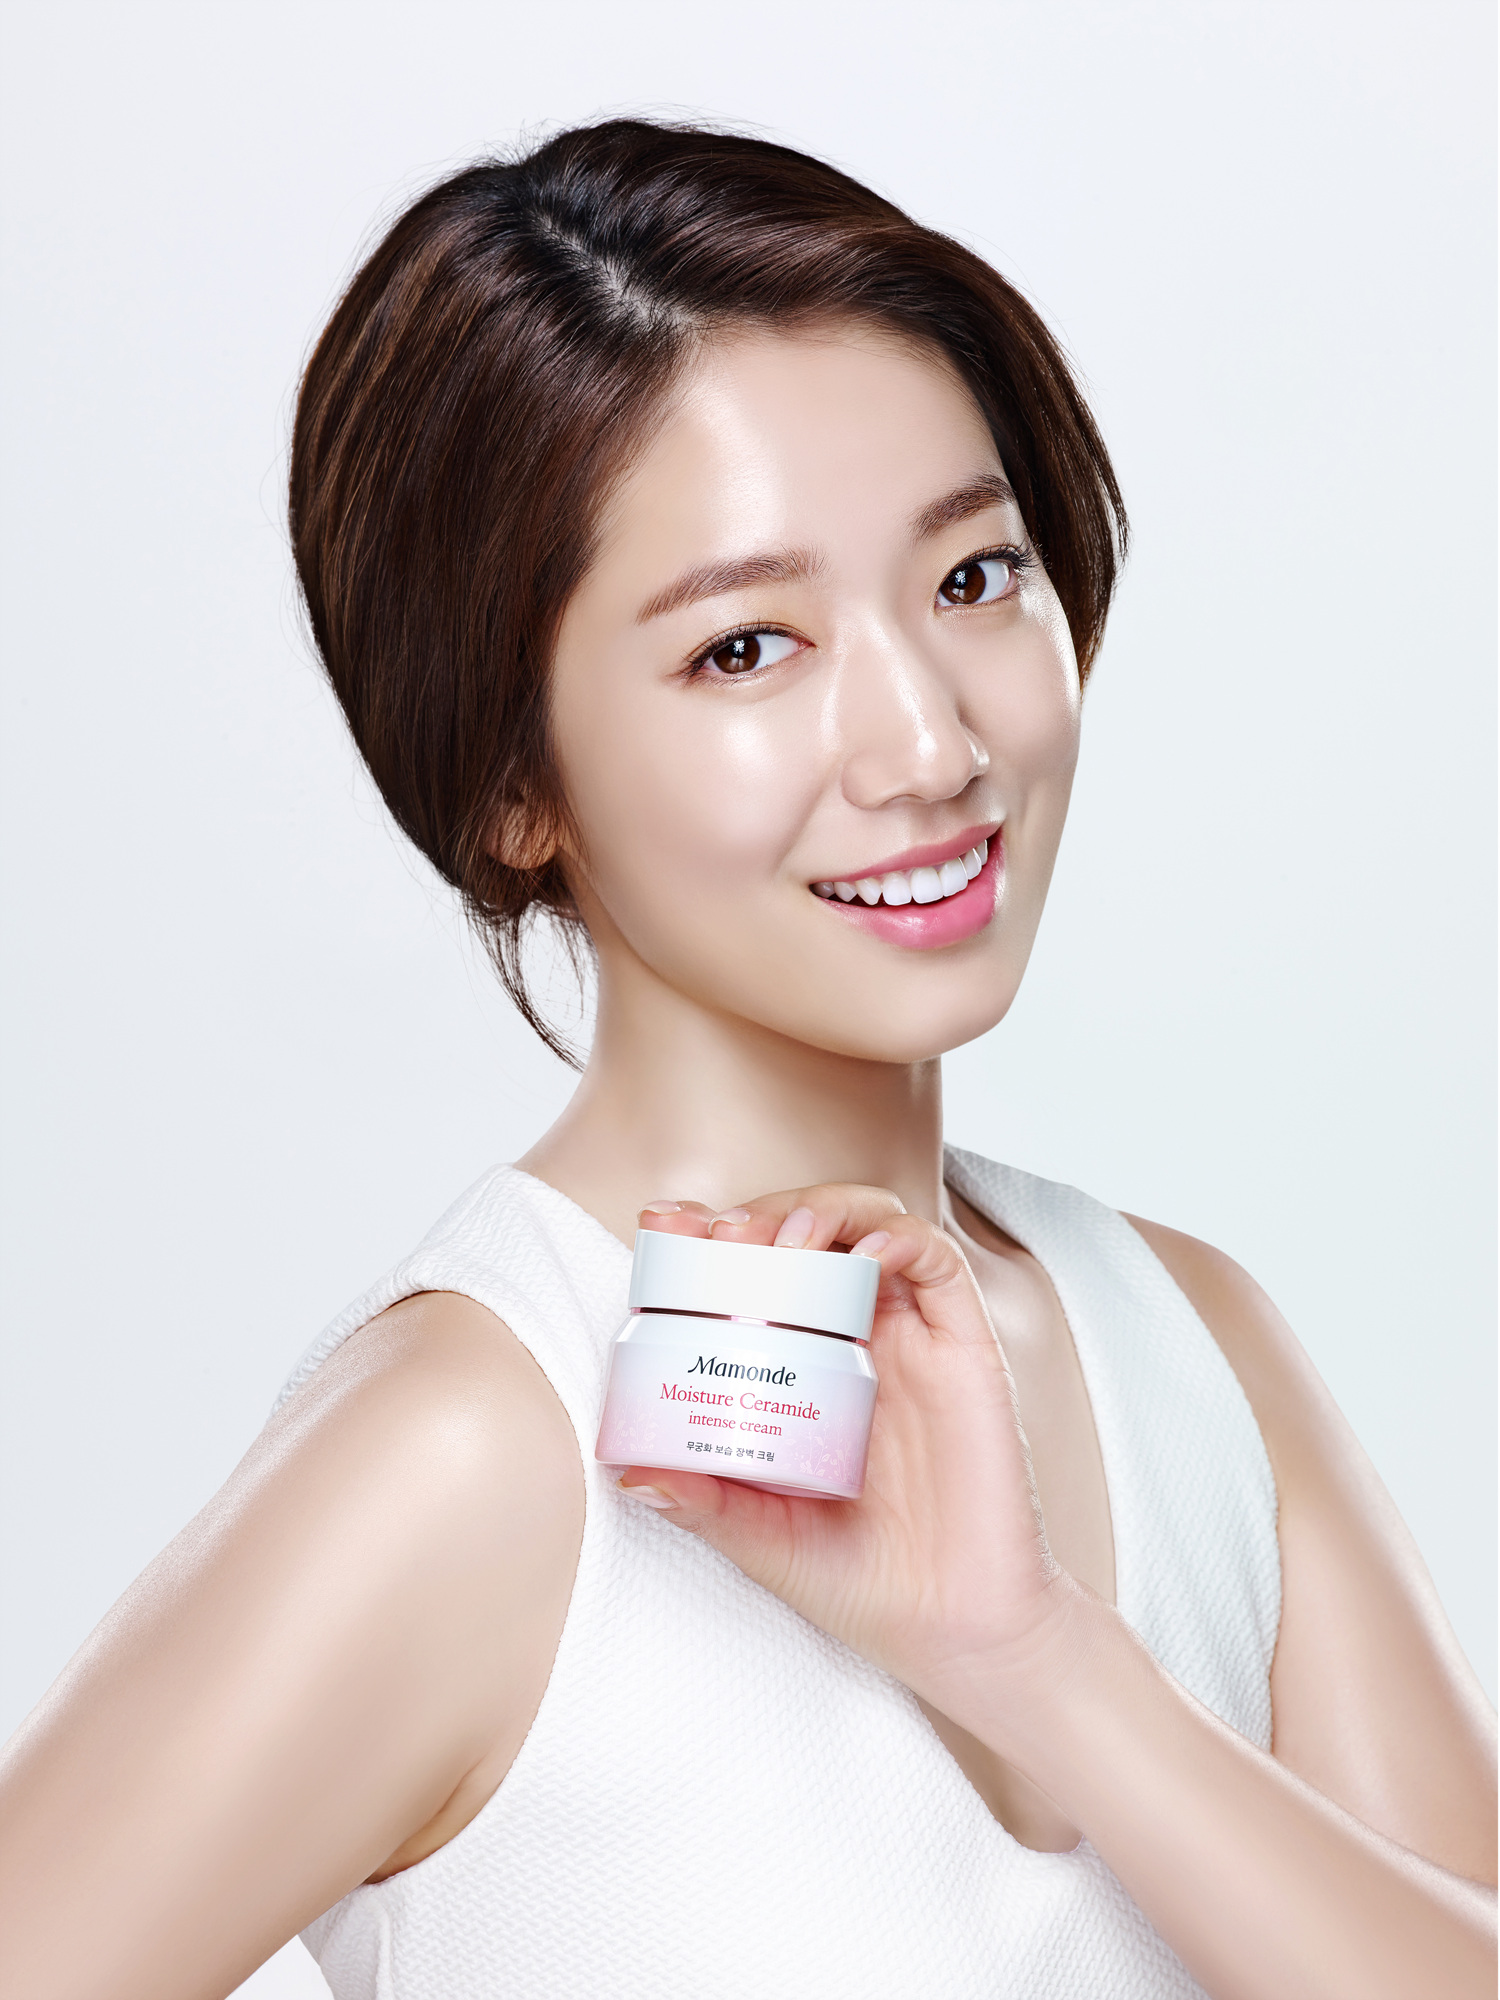 Park Shin Hye As Beautiful As Hibiscus For Malaysia Mamonde Launch